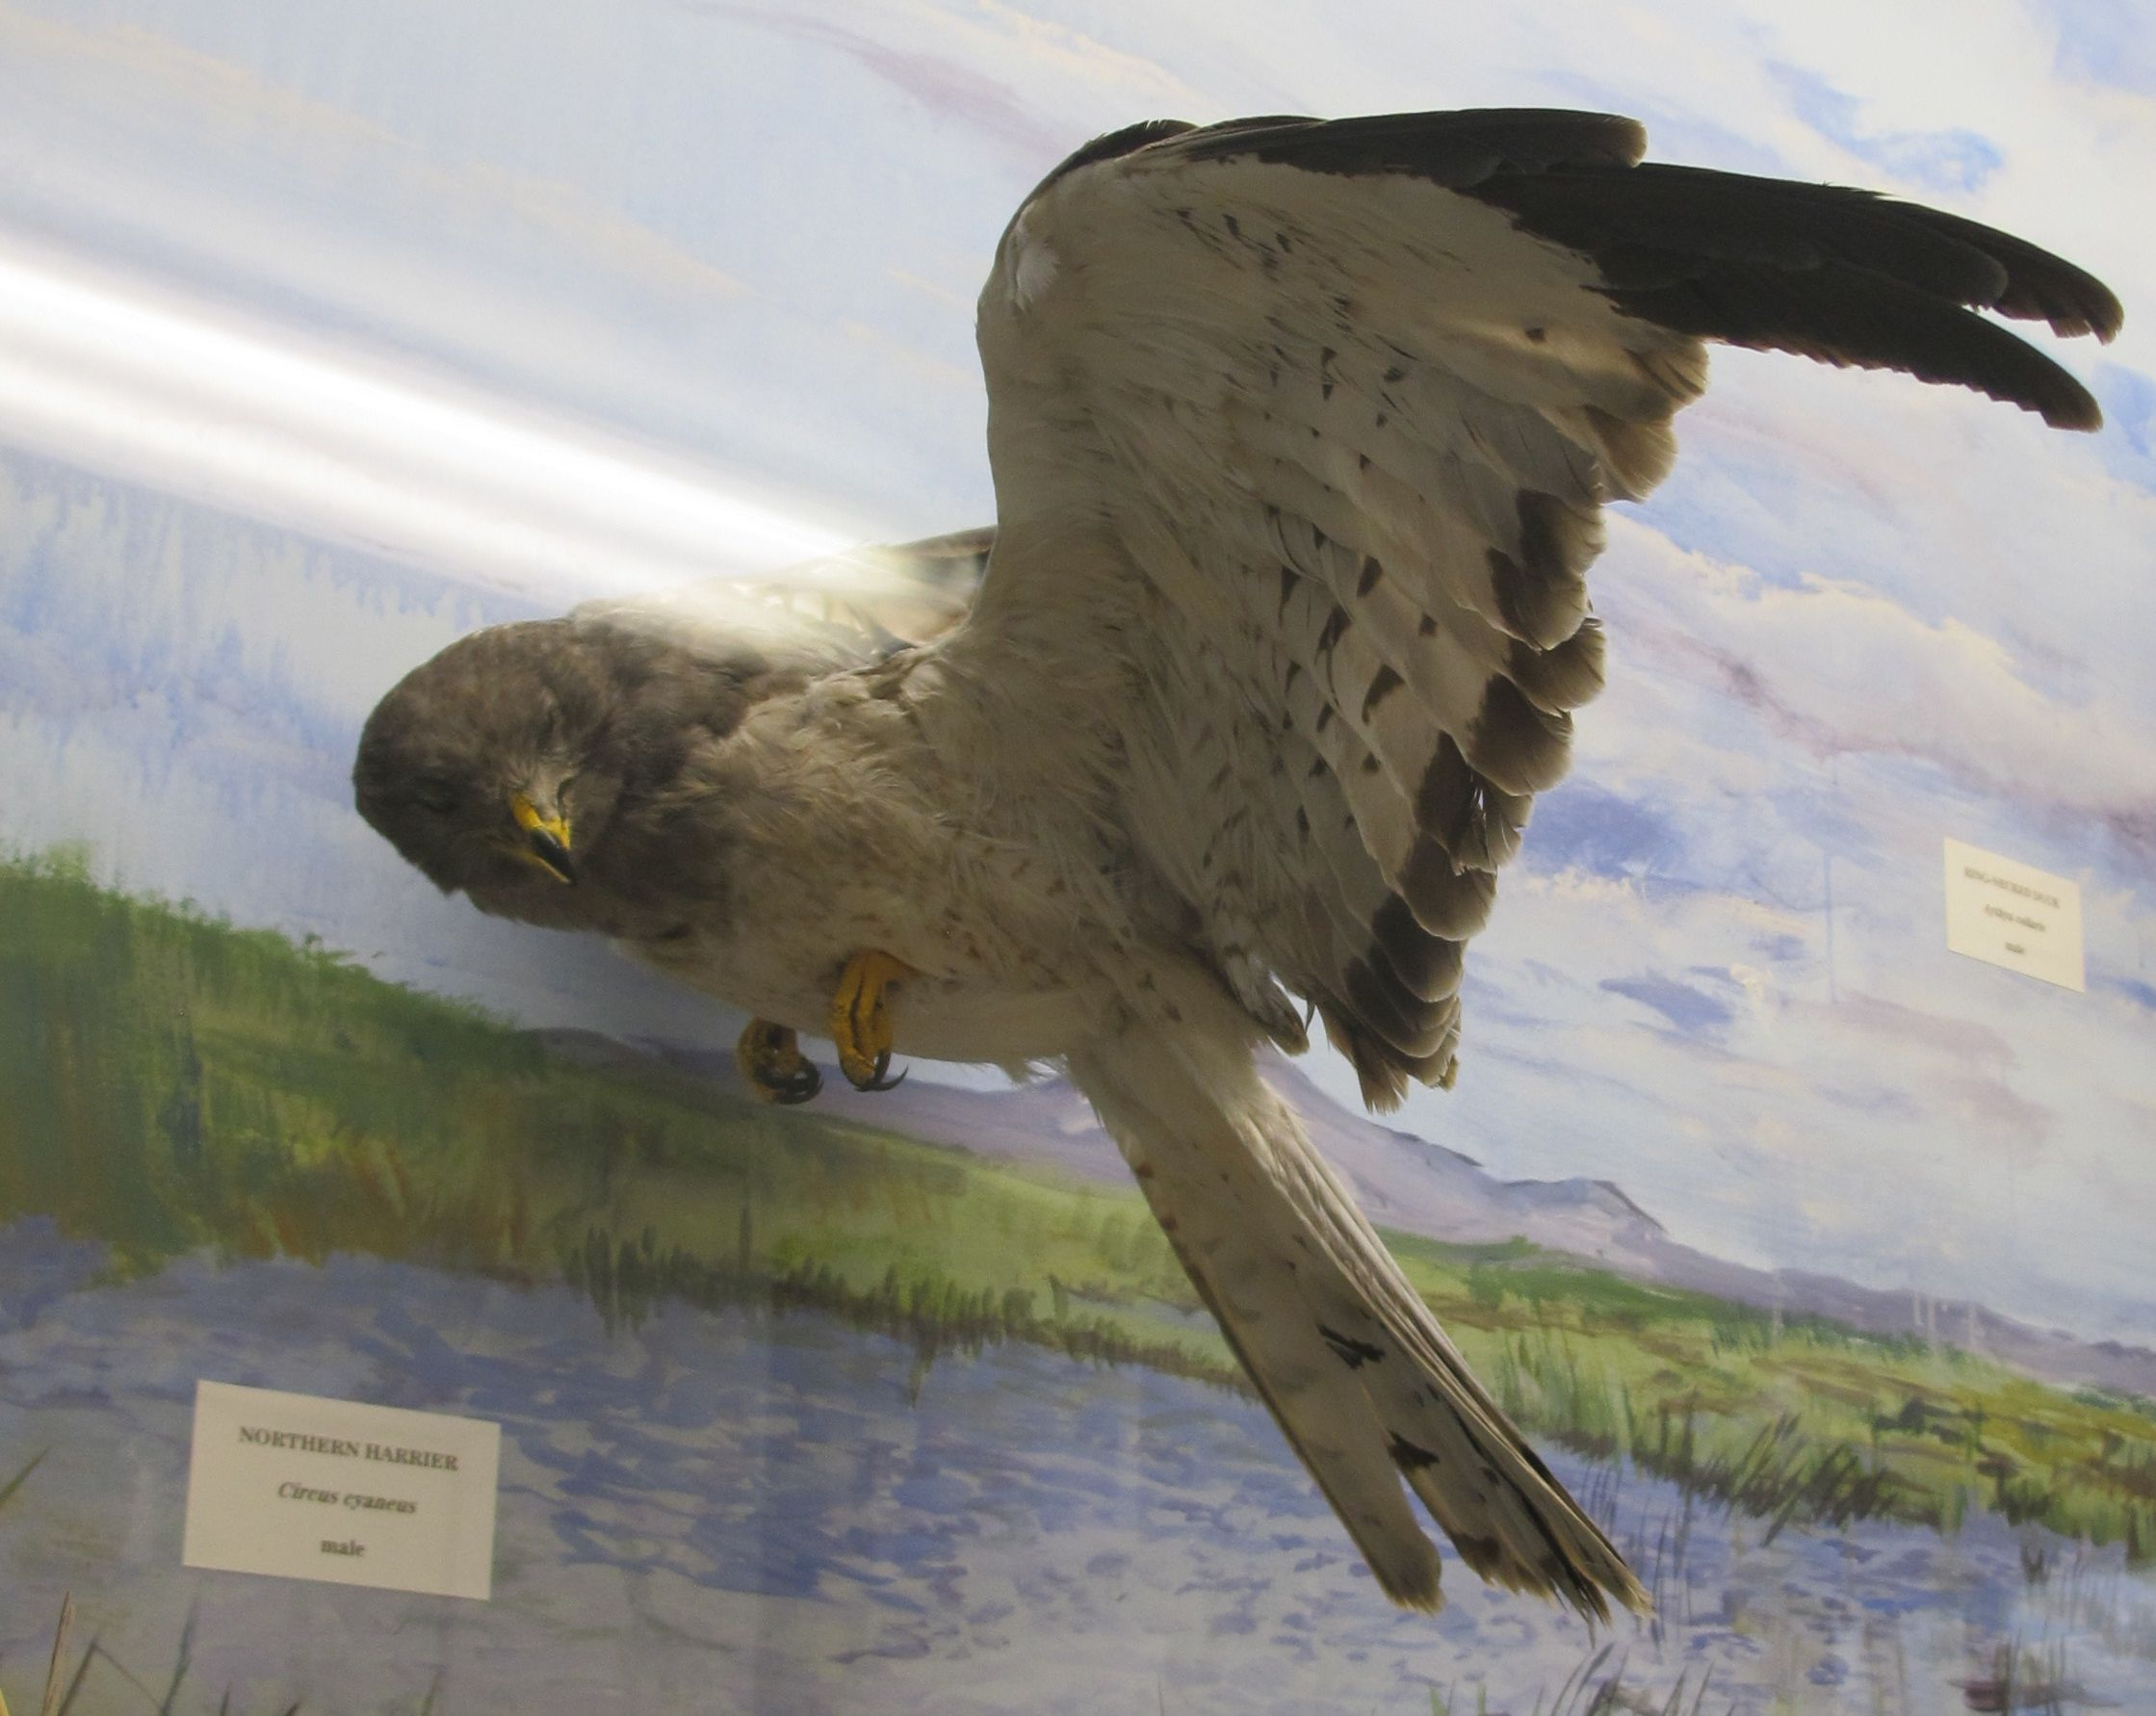 A northern harrier at the Malheur refuge museum.